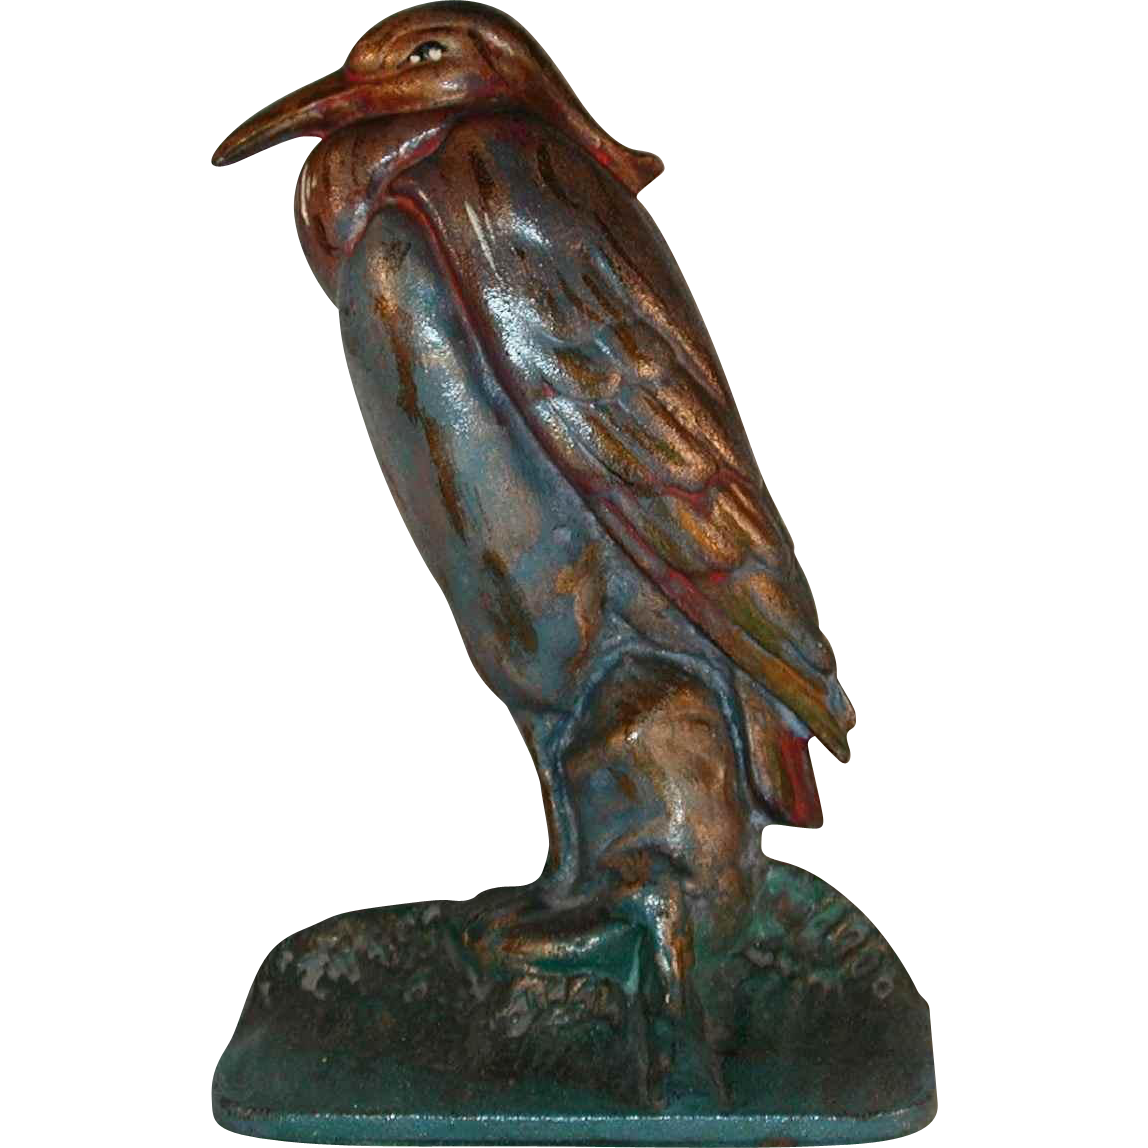 Vintage cast iron doorstop colorful heron standing albany foundry co from giameraandc on ruby lane - Cast iron doorstop ...